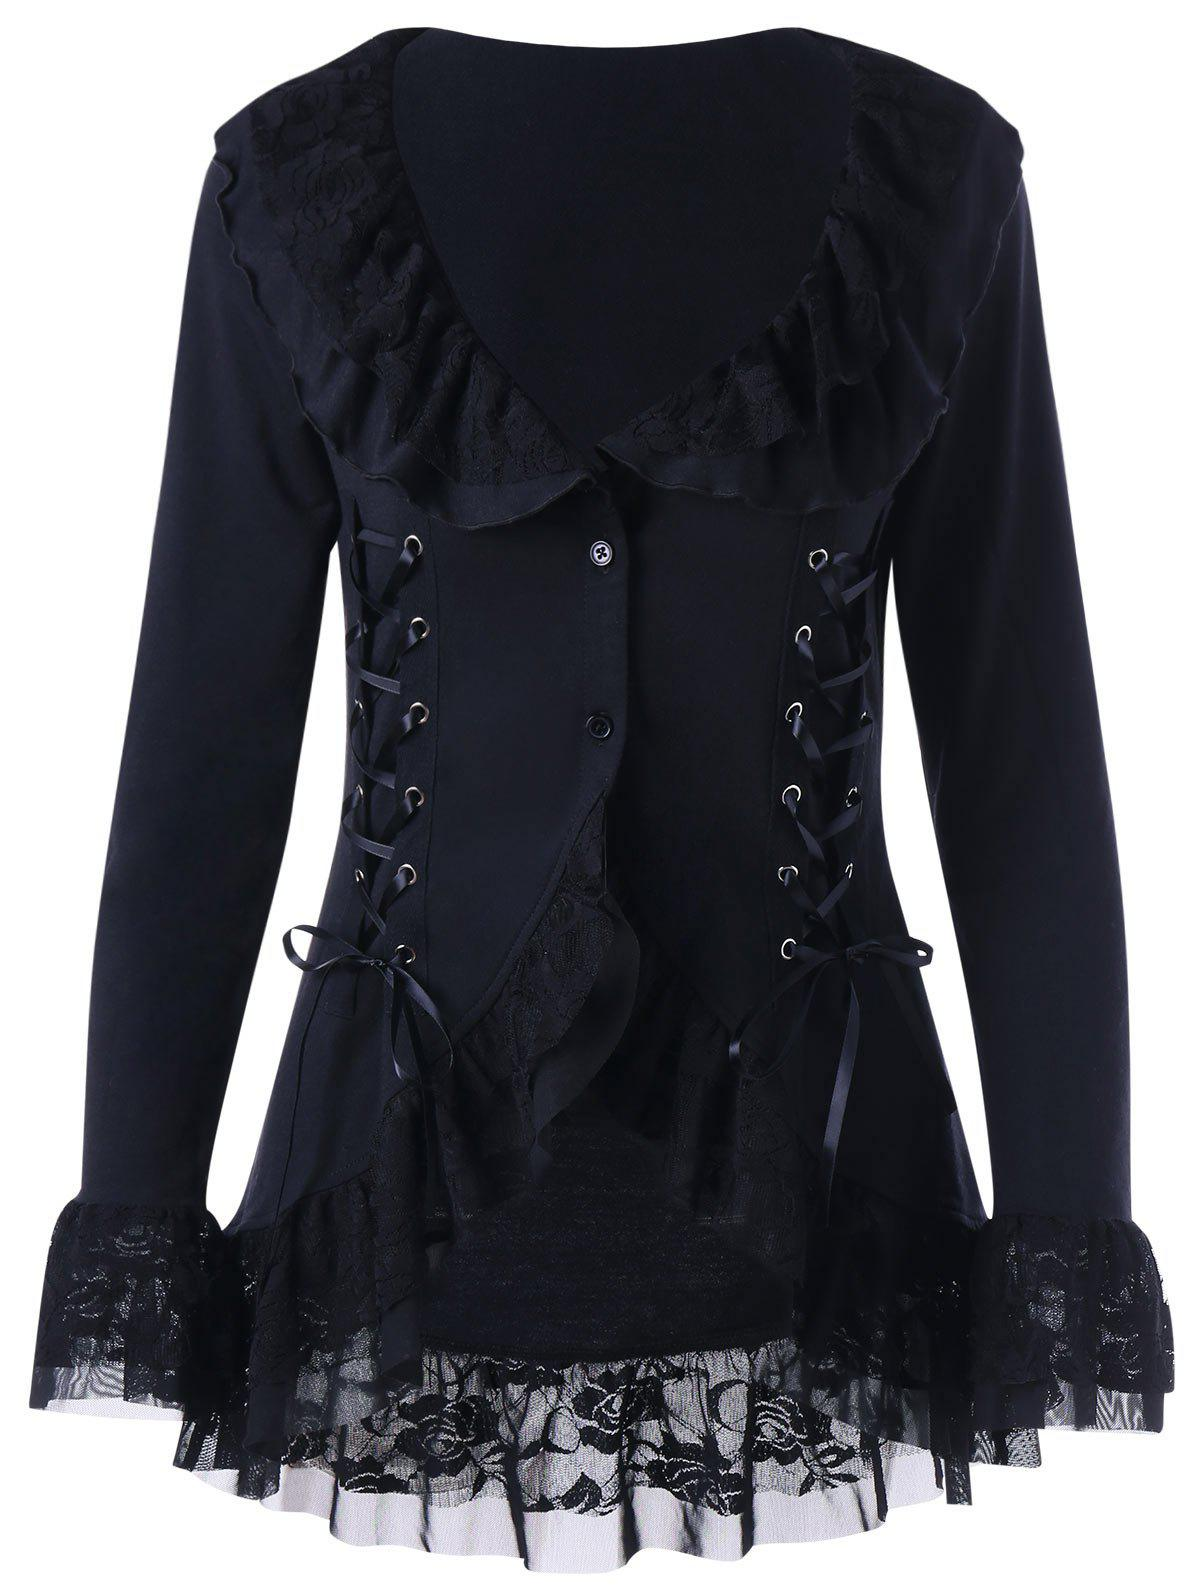 Lace Trim Lace Up Gothic CoatWOMEN<br><br>Size: XL; Color: BLACK; Clothes Type: Others; Material: Polyester; Type: Slim; Shirt Length: Regular; Sleeve Length: Full; Collar: Turn-down Collar; Pattern Type: Floral; Embellishment: Lace; Style: Gothic; Season: Fall,Spring; Weight: 0.3500kg; Package Contents: 1 x Coat;